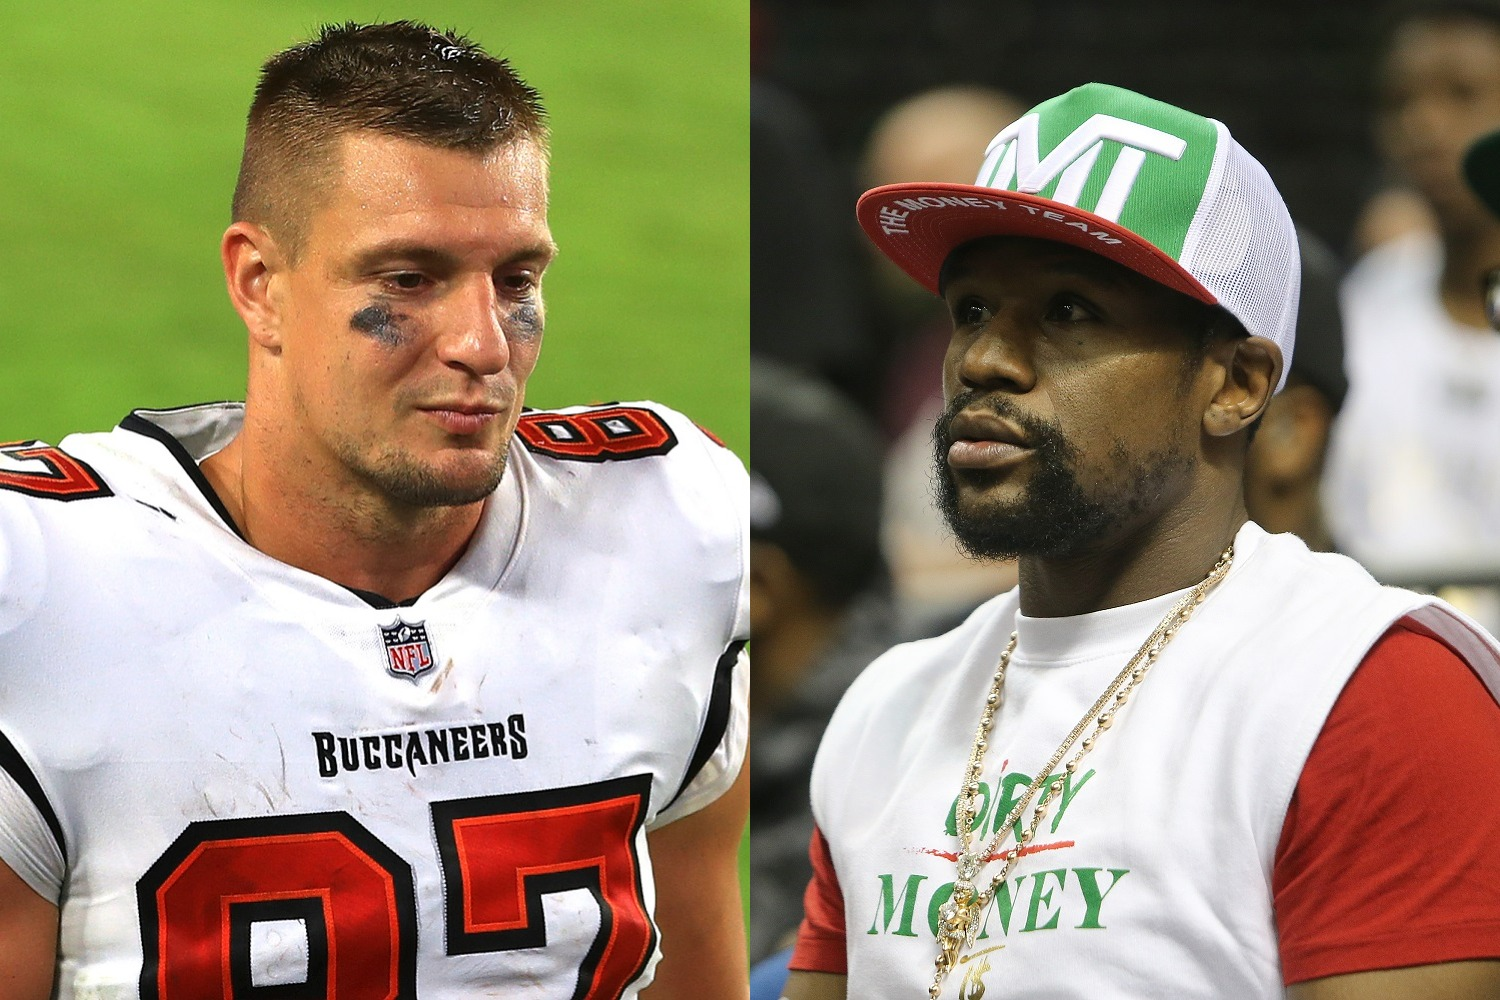 Rob Gronkowski Floyd Mayweather face $5 million lawsuit